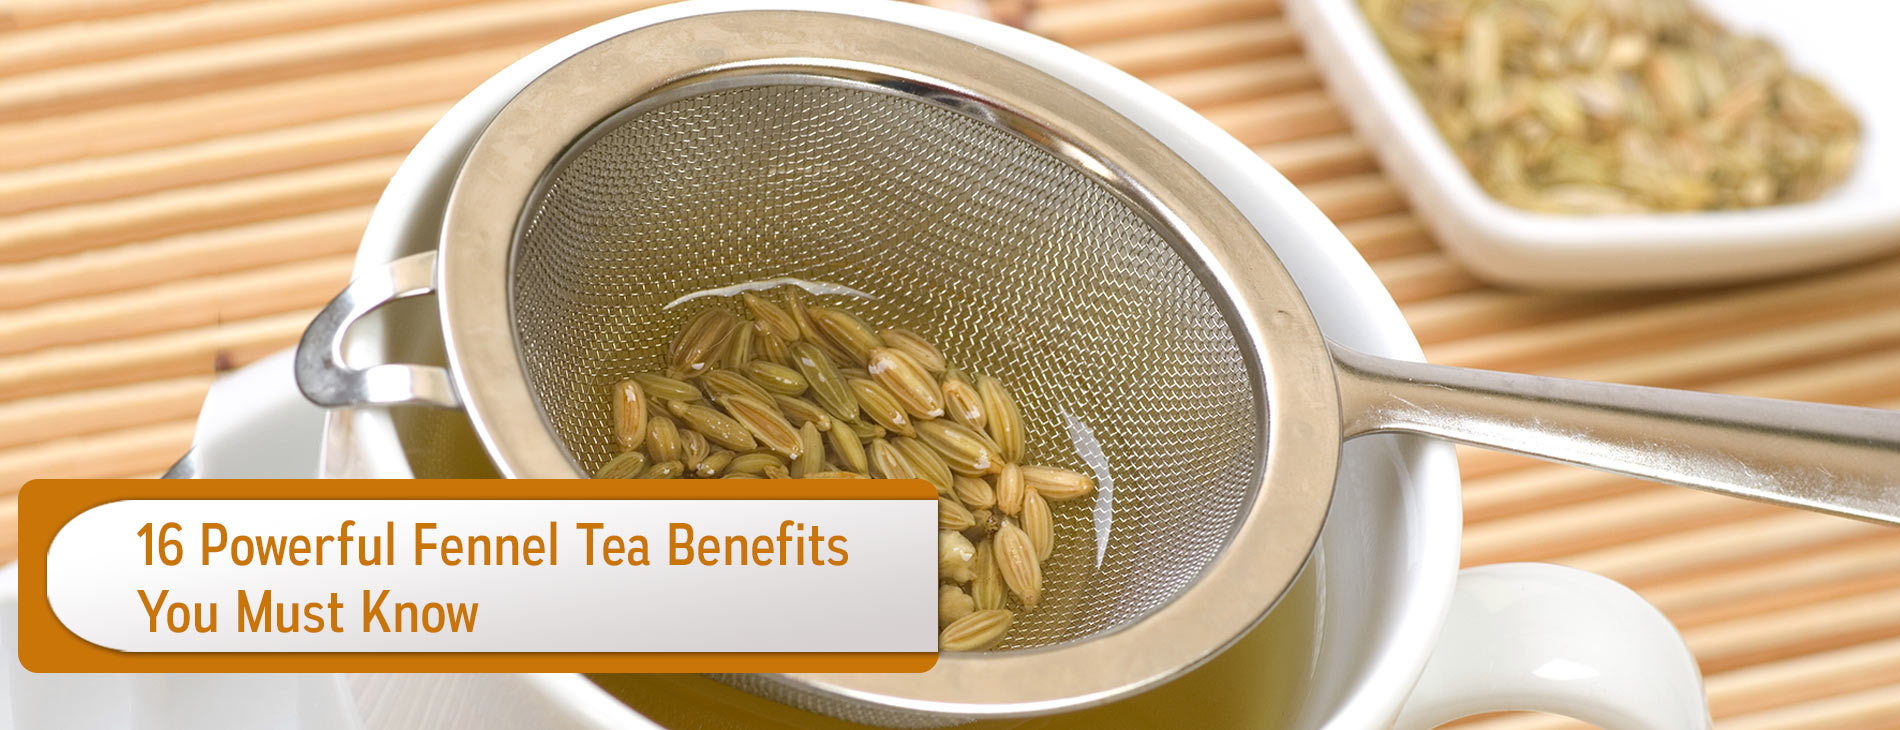 16-Powerful-Fennel-Tea-Benefits-You-Must-Know